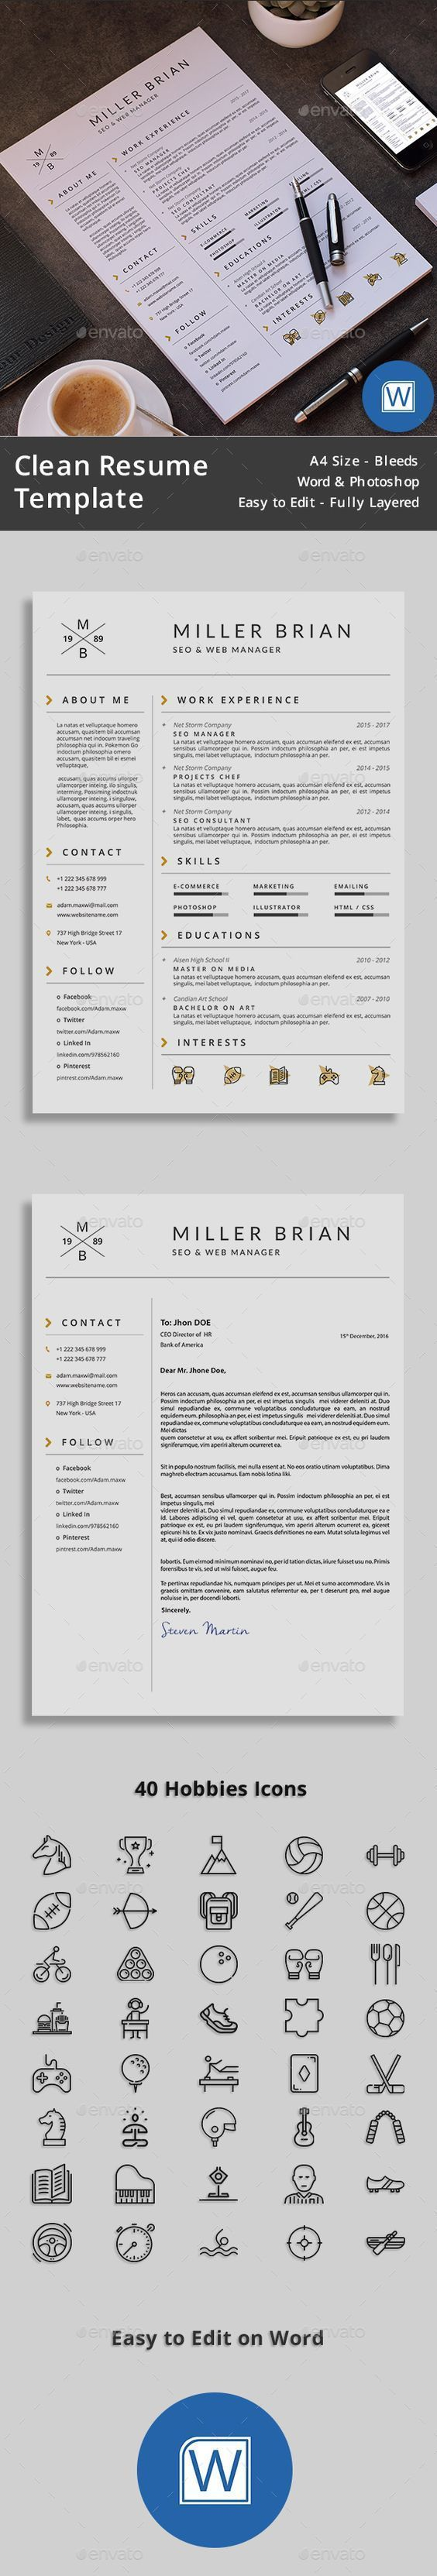 Word Cv Templates 2007%0A Professional  u     Modern Resume Template for MS Word   CV Template for word   Resume  template for word       Editable   Instant Digital Download